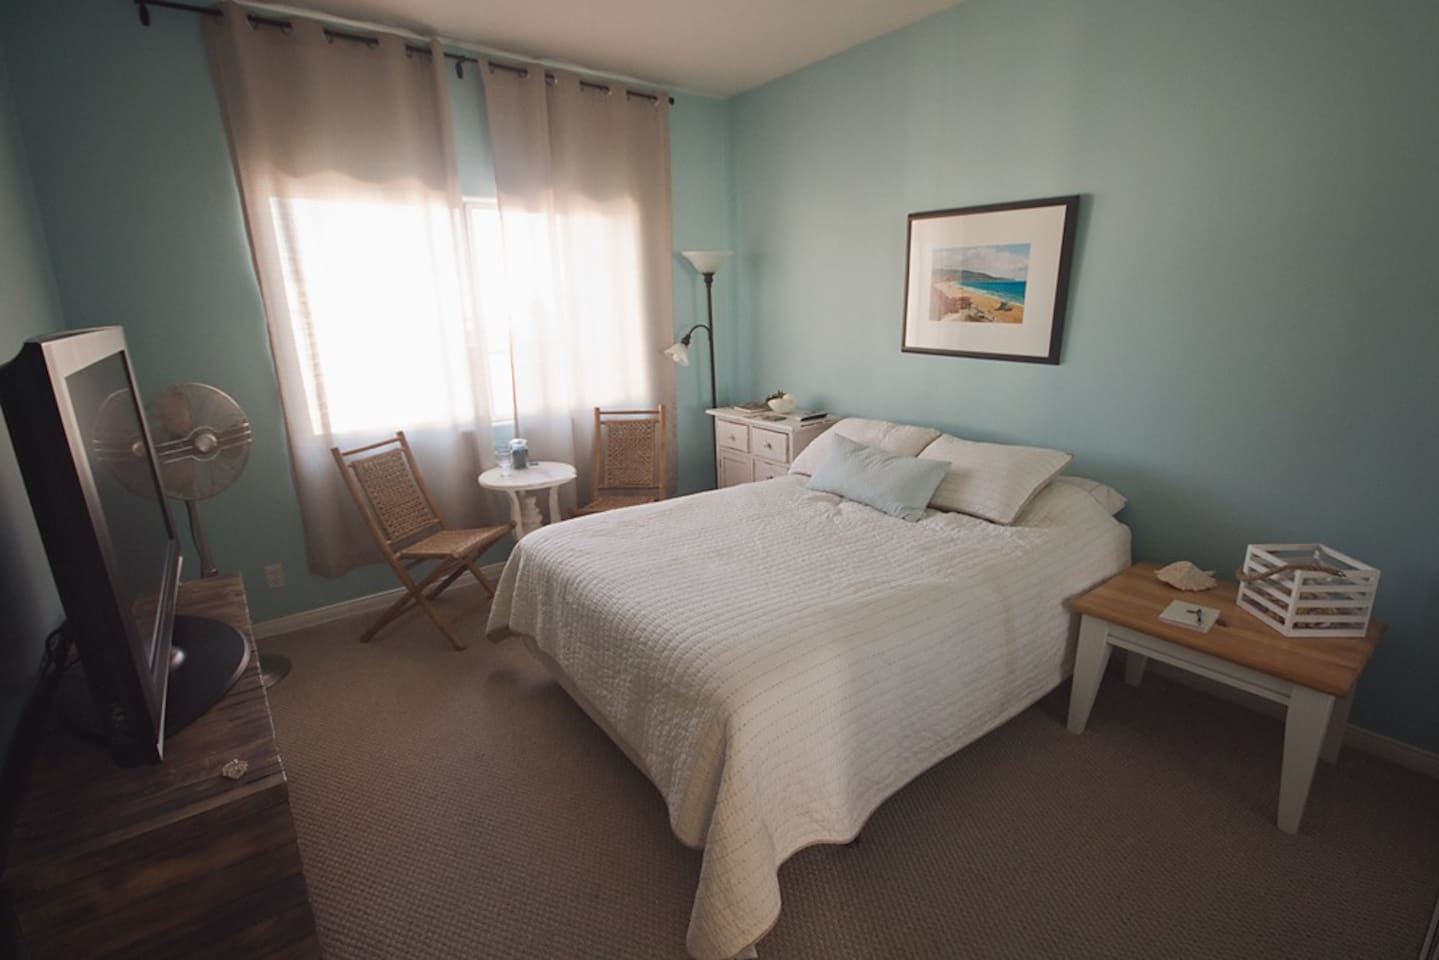 Private room and bath with queen bed, flat screen with Directv, ocean breeze included.